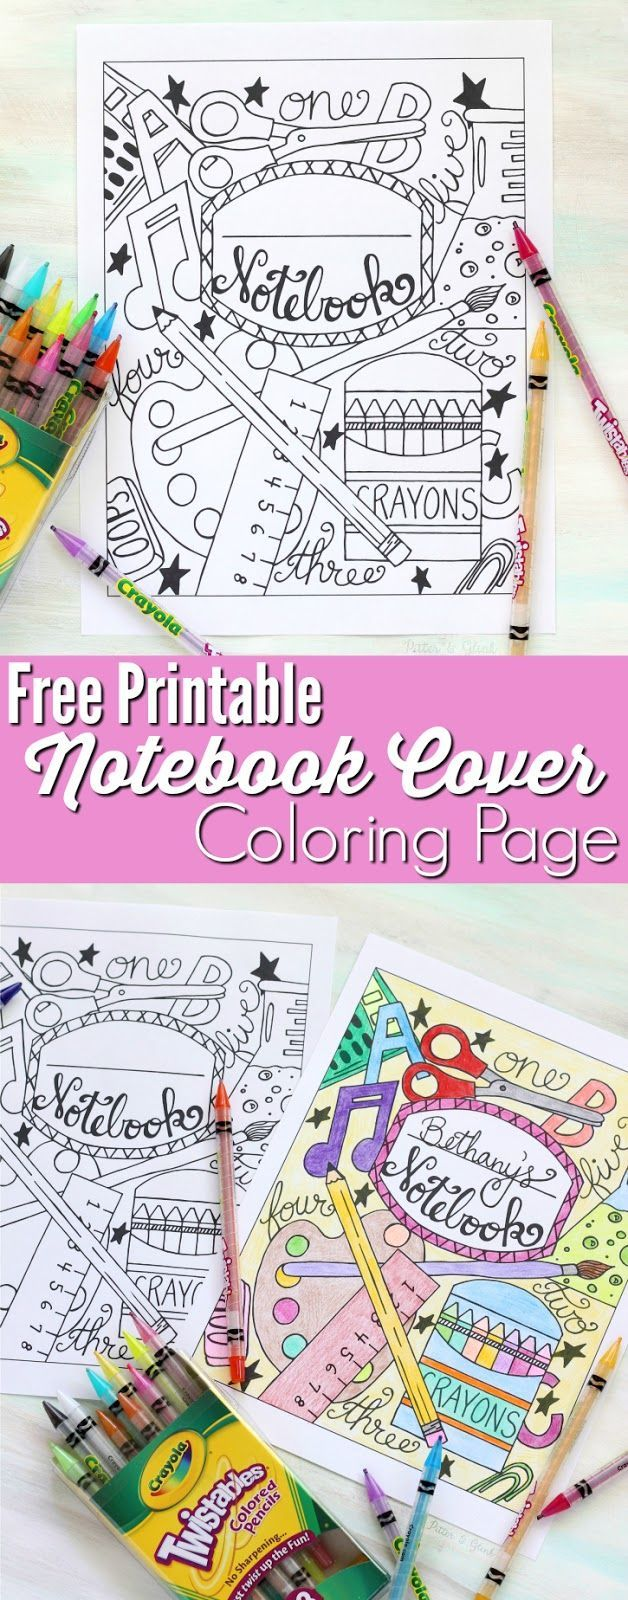 Free Printable Notebook Cover | Kids Activities and Crafts ...